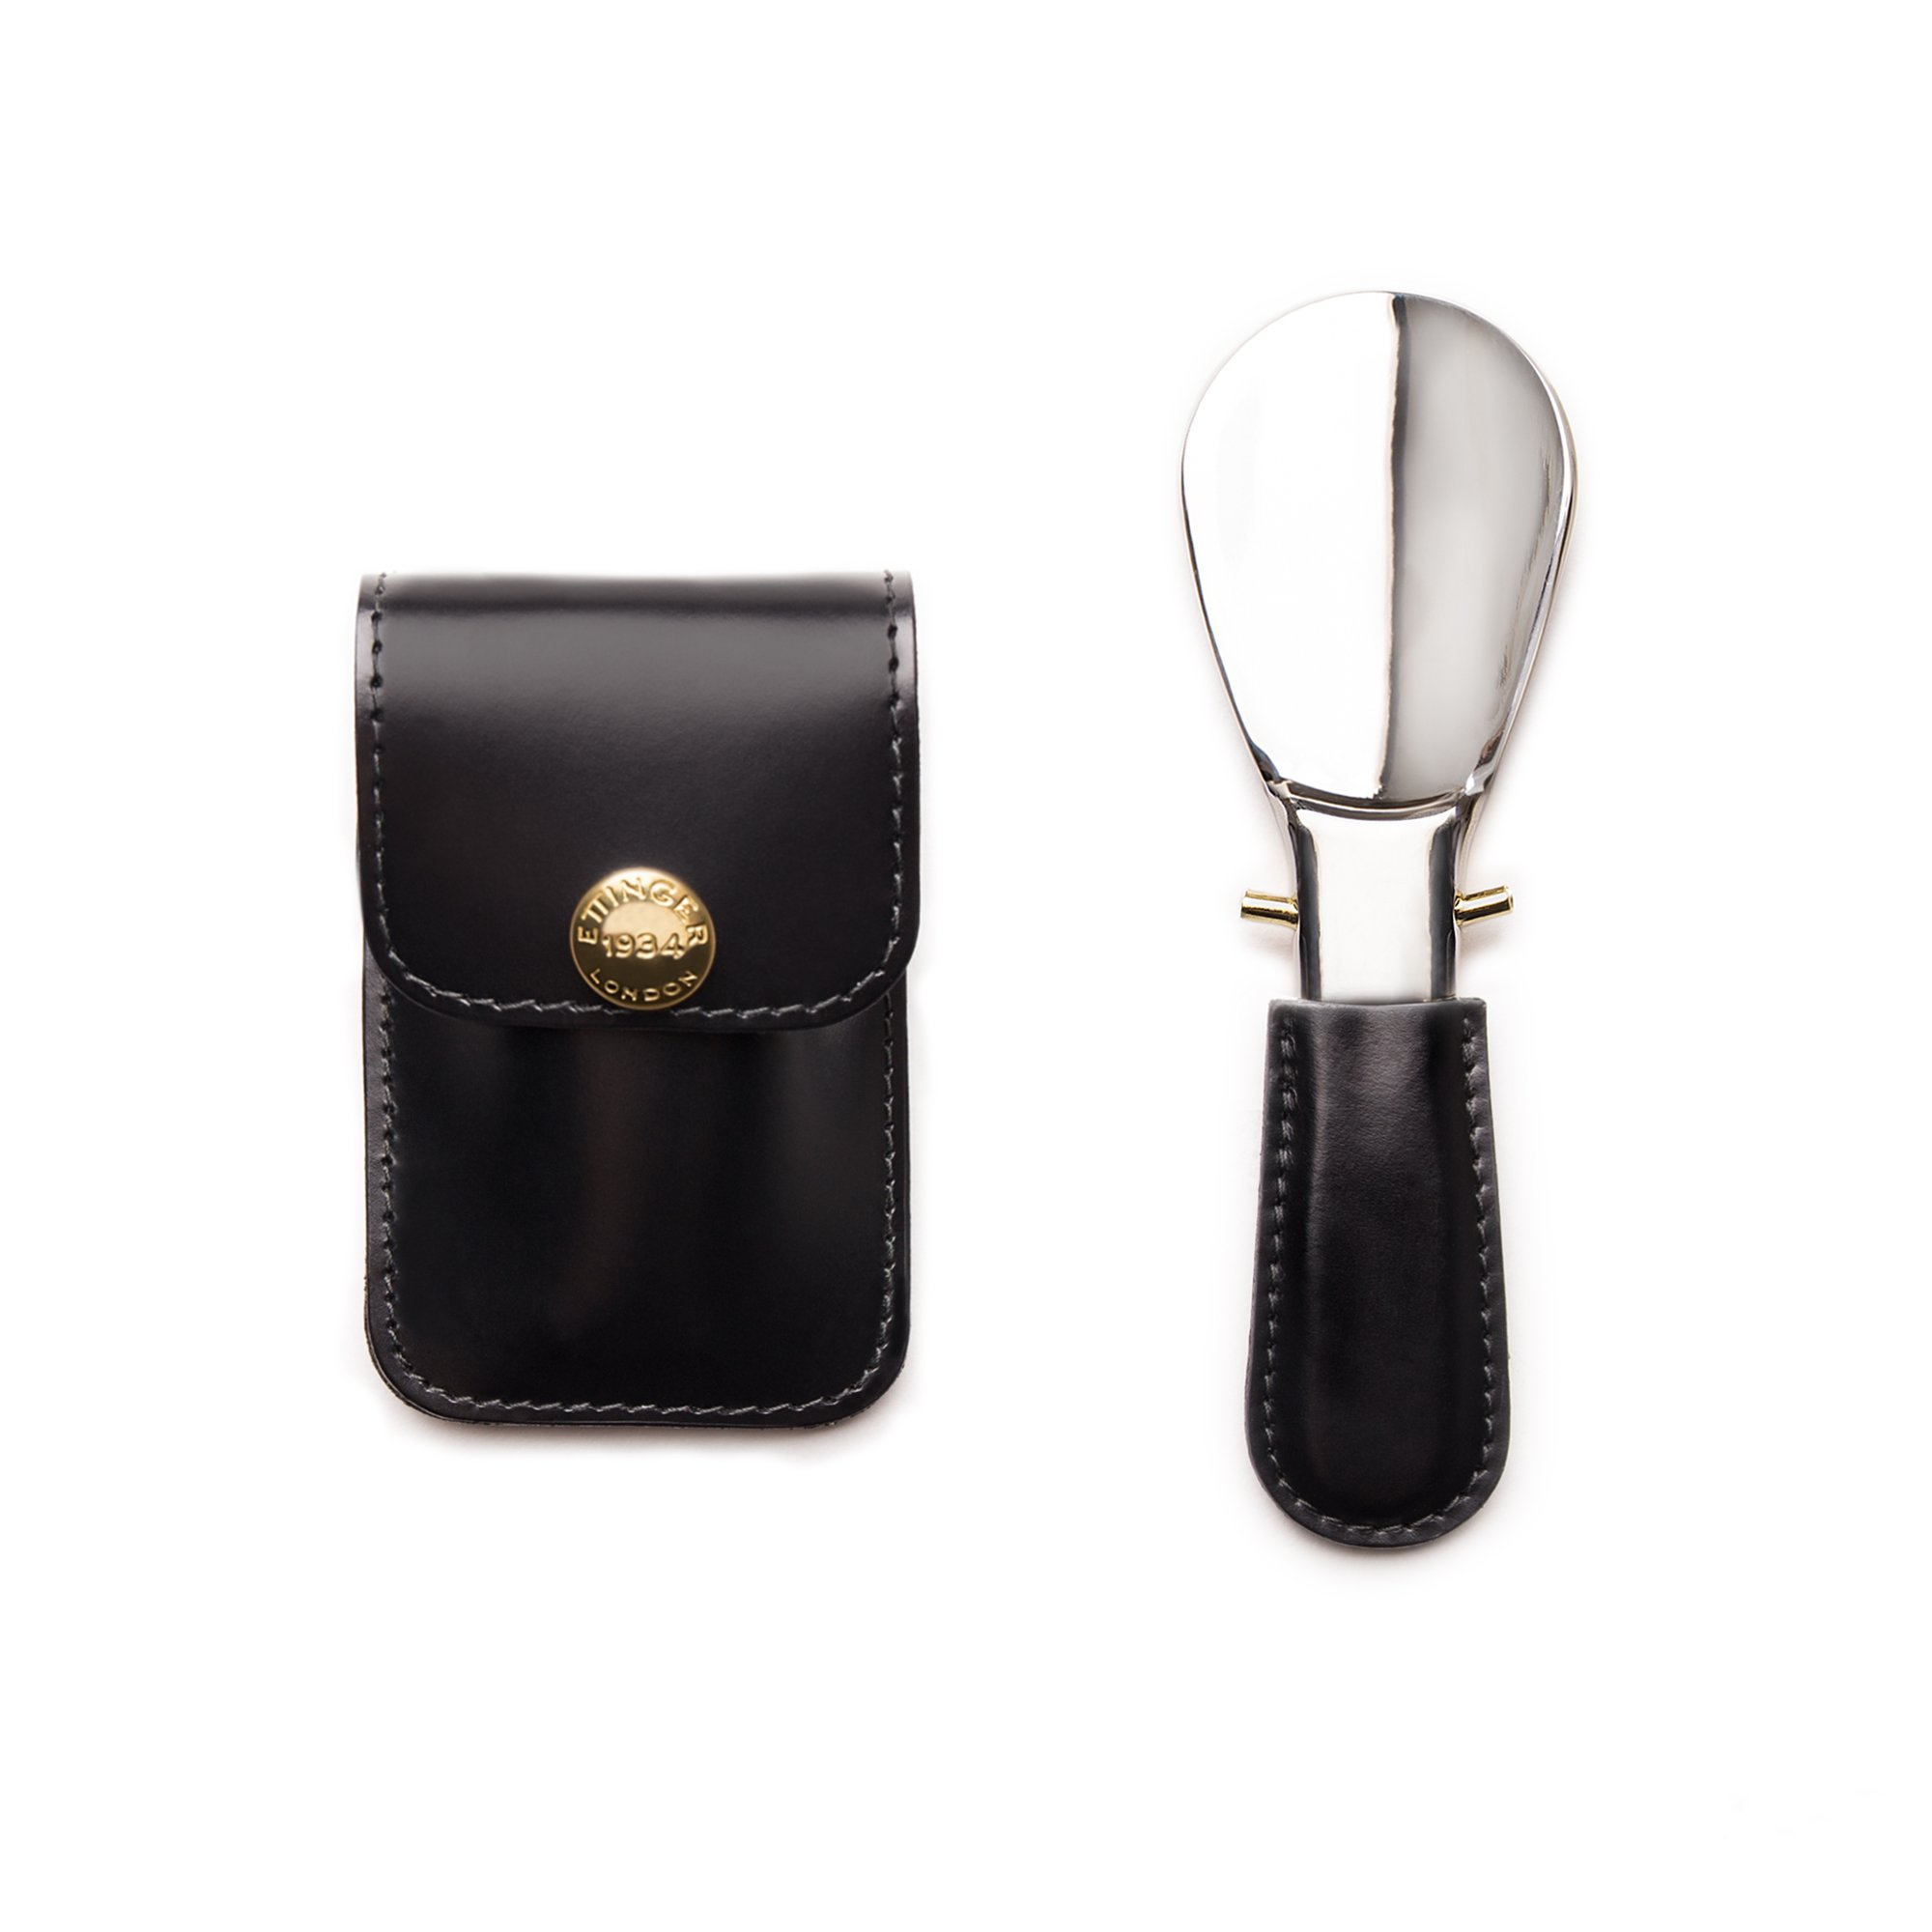 Ettinger Bridle Hide Collection Travel Shoe Horn in Pouch, Black/Silver